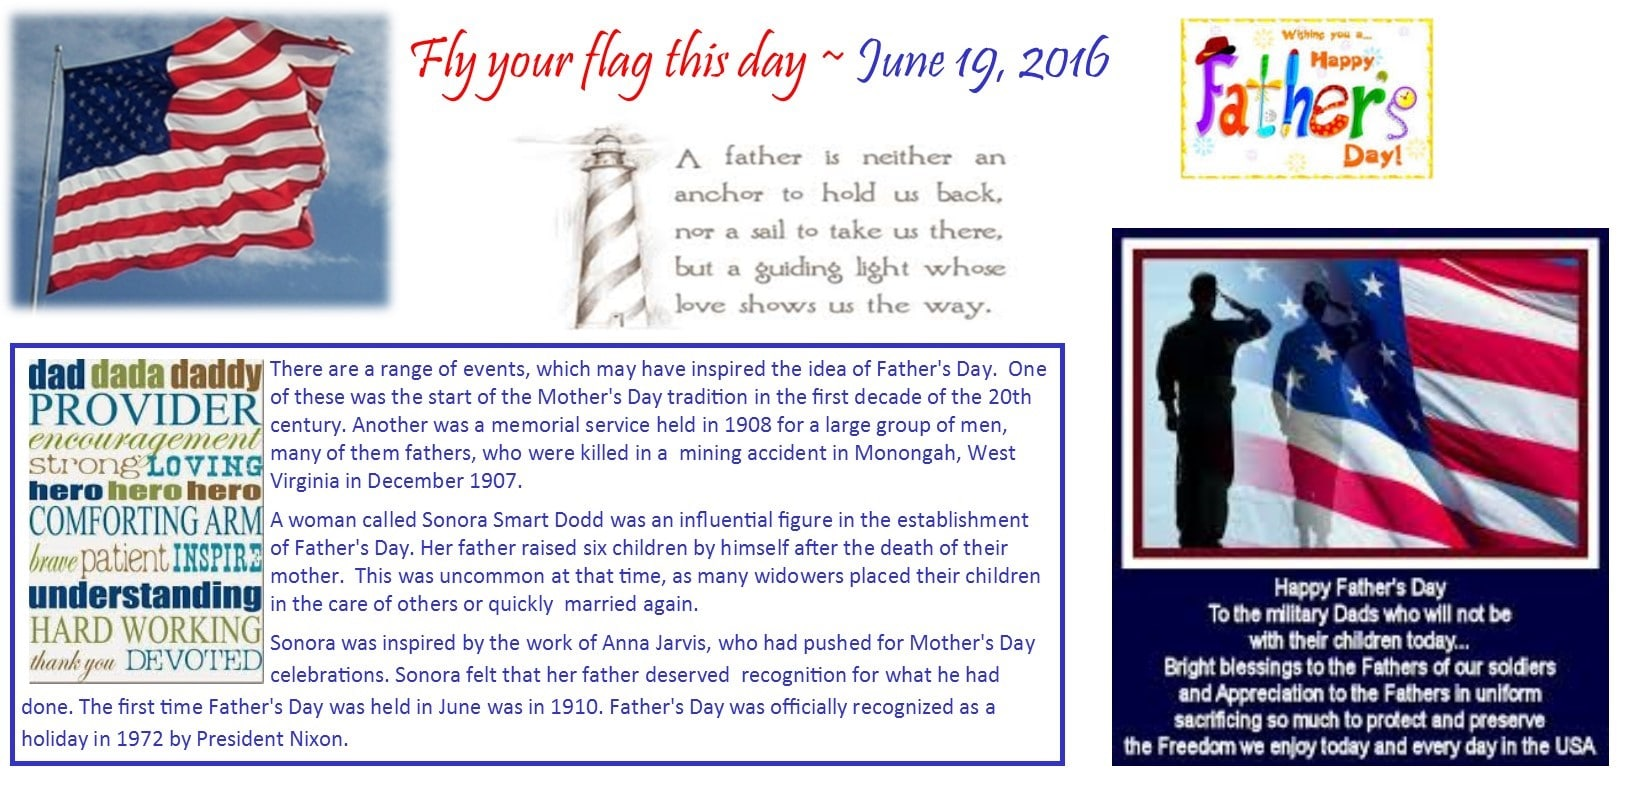 Reminder to fly the flag Fathers Day June 19 2016 for FB